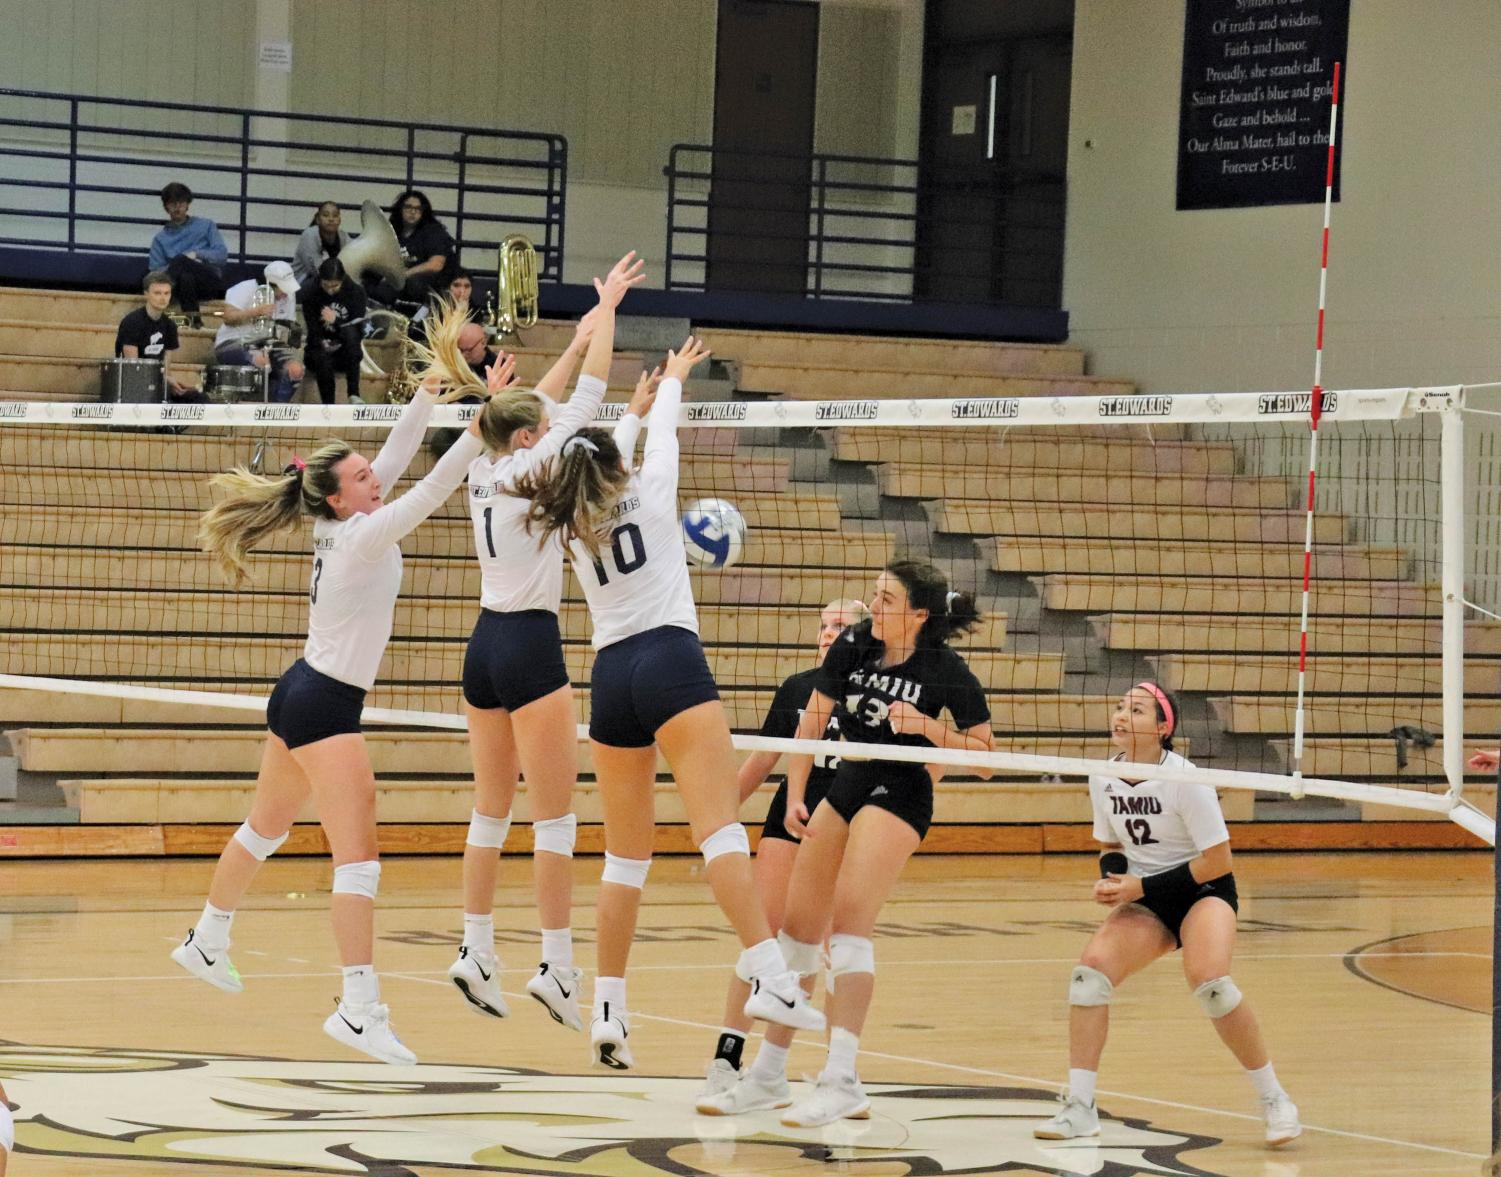 The entire SEU front row swarms to block a spike from Texas A&M Kingsville. SEU beat TAMIU 3-0.